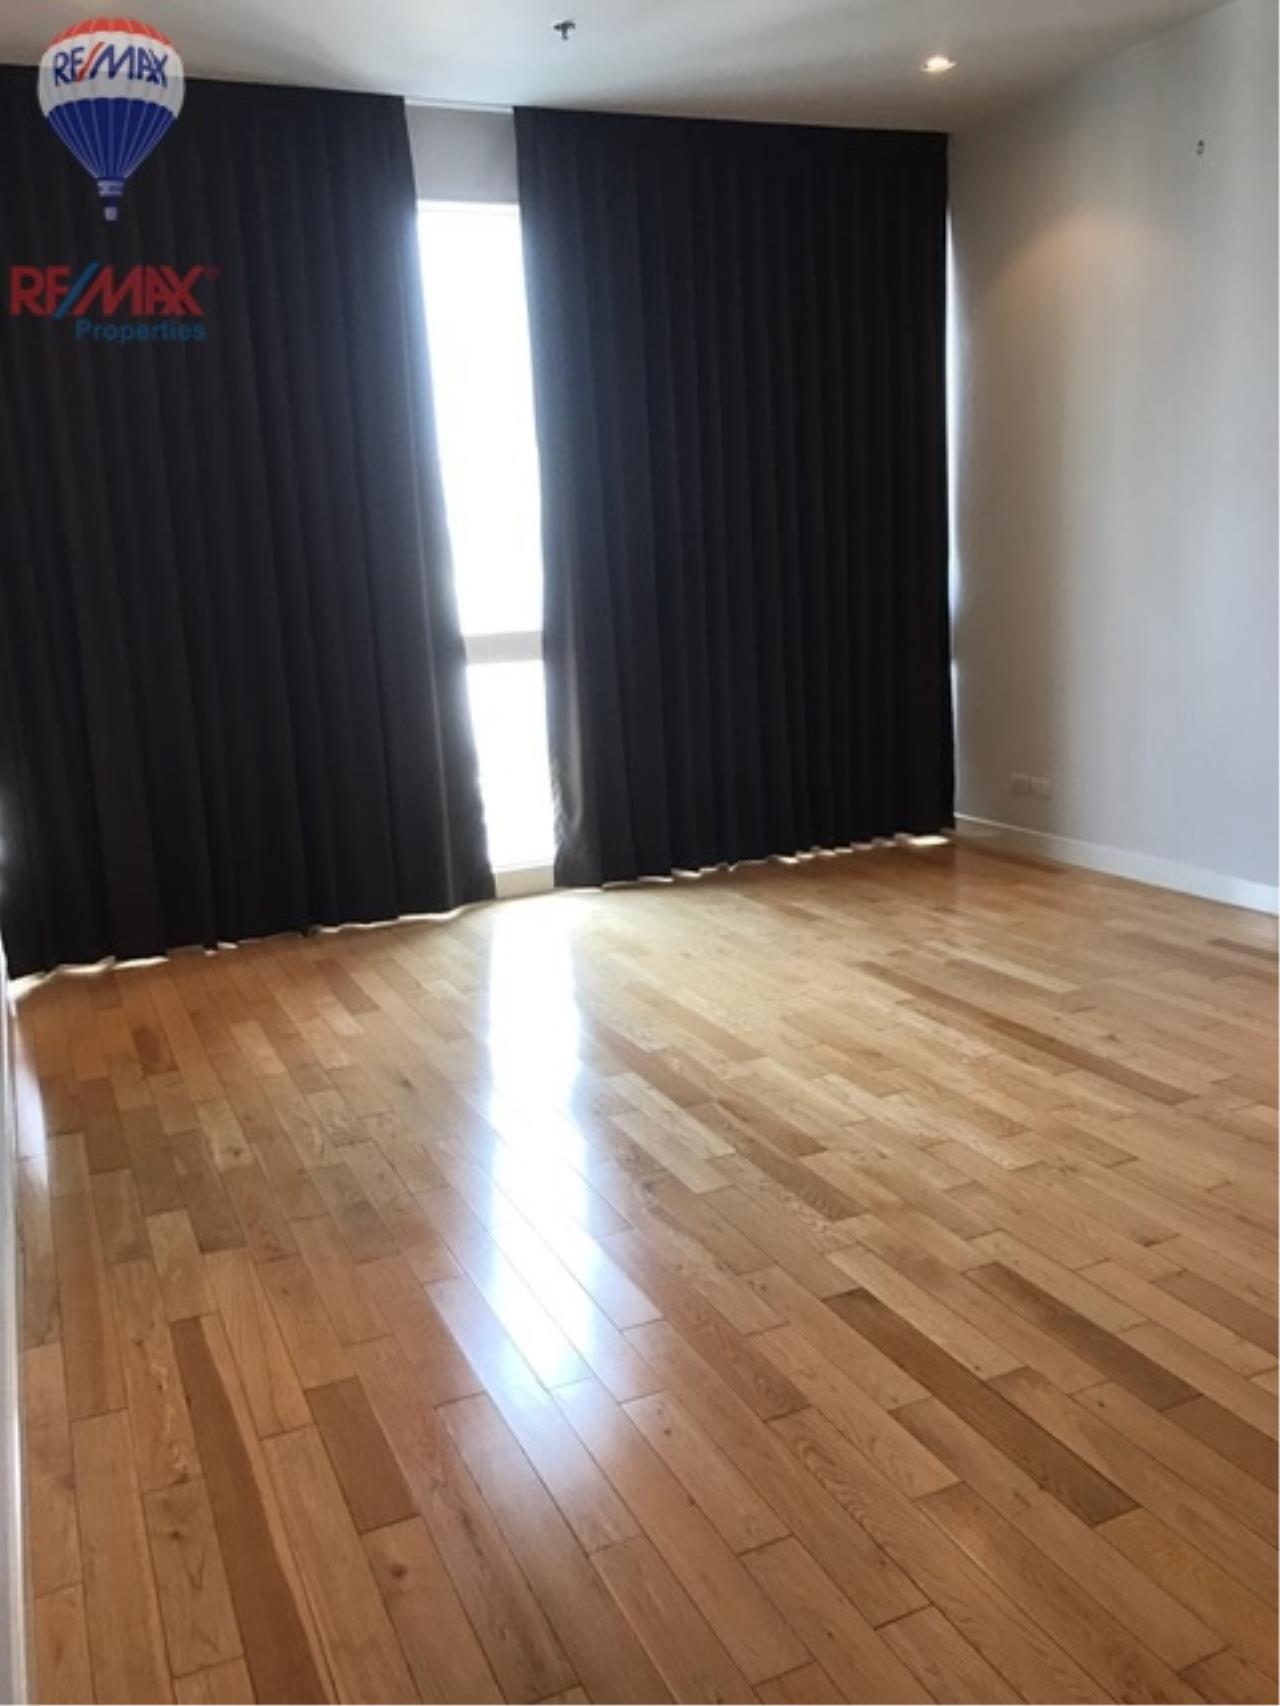 RE/MAX Properties Agency's RENT 2 Bedroom 90 Sq.m at Millennium Residence 3